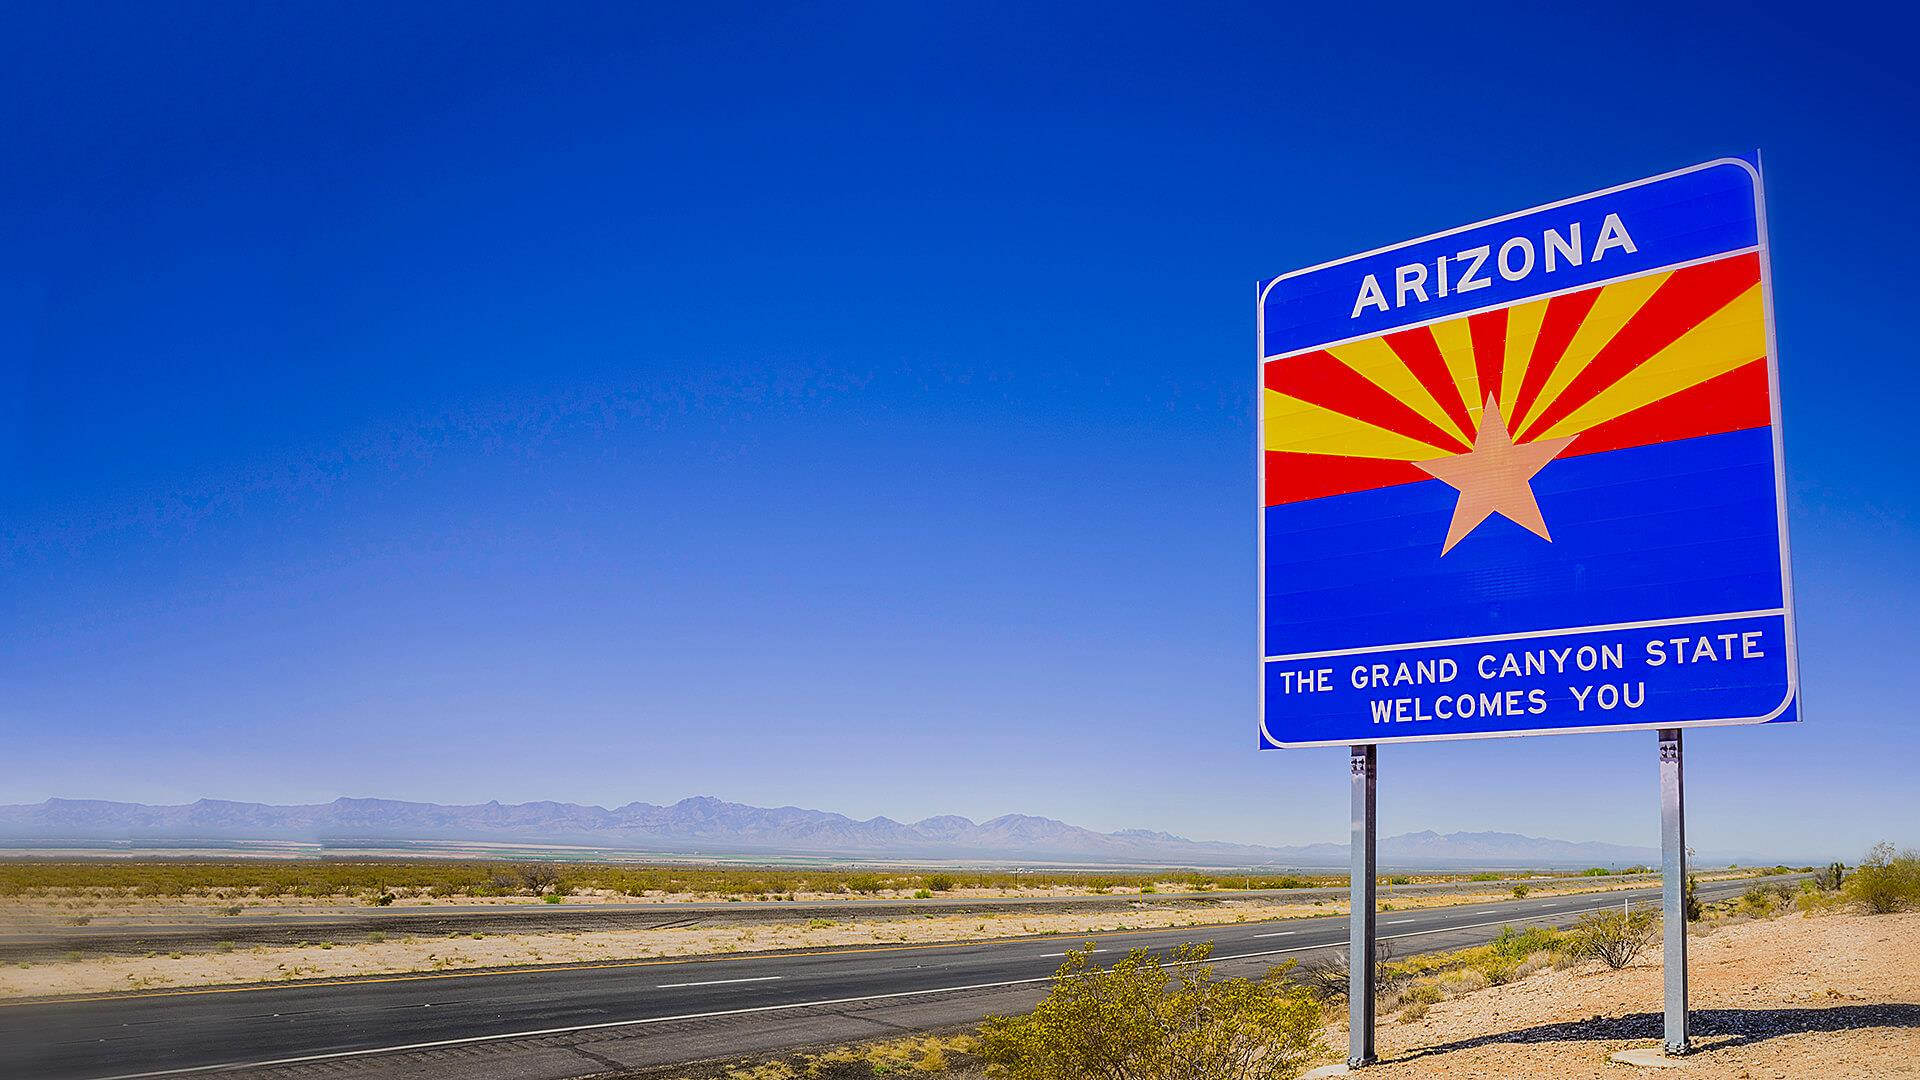 Arizona welcoming sign on the highway